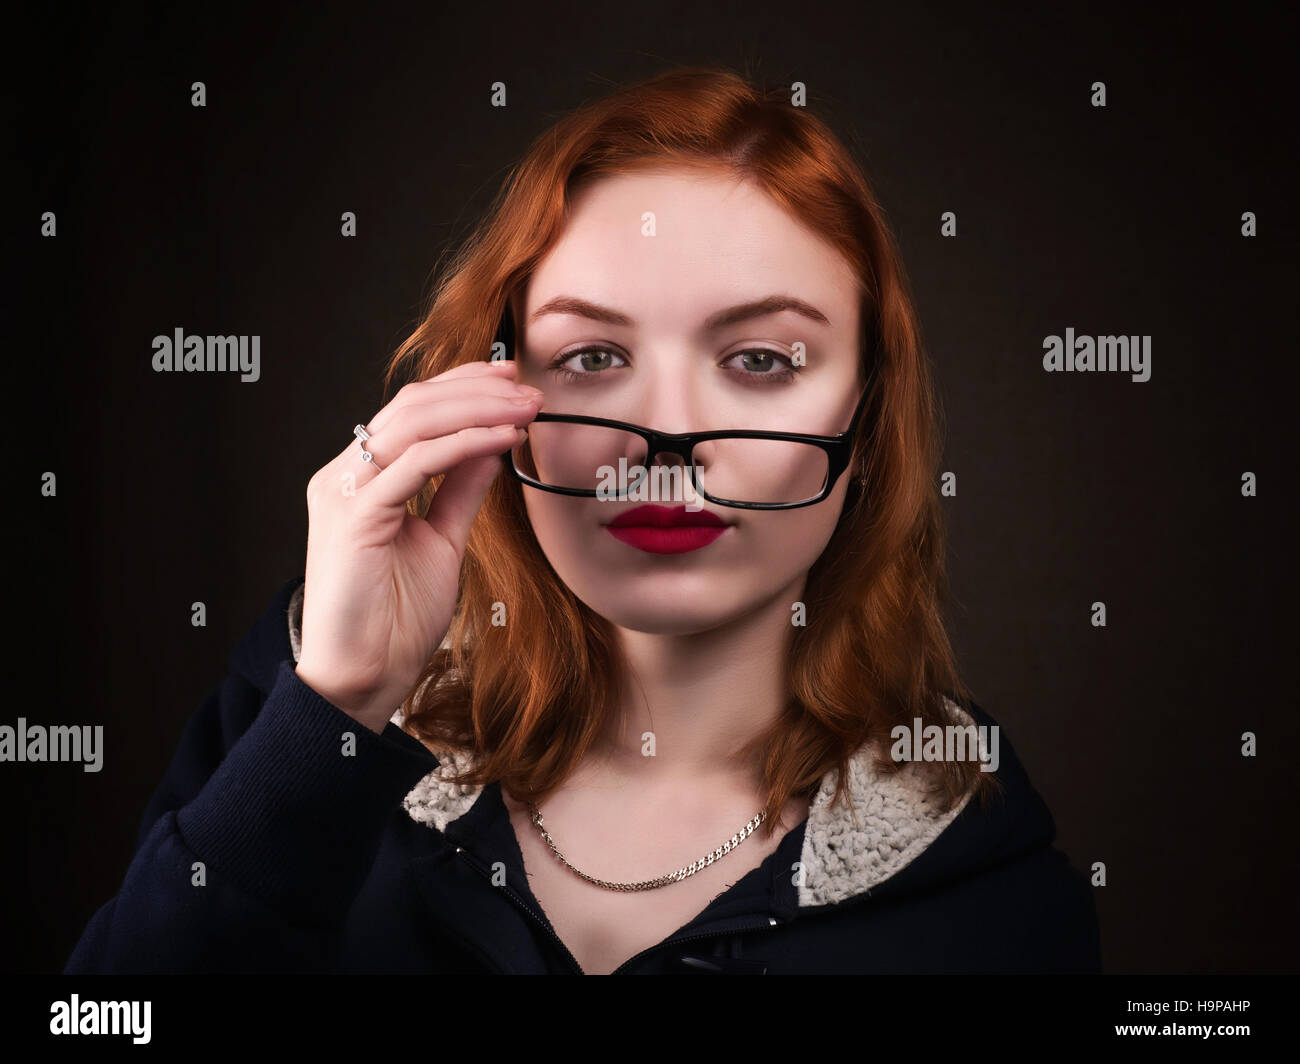 Beautiful nerd girl or young woman looking over eyeglasses. Vision, skepticism, evaluation, seduction, education - Stock Image